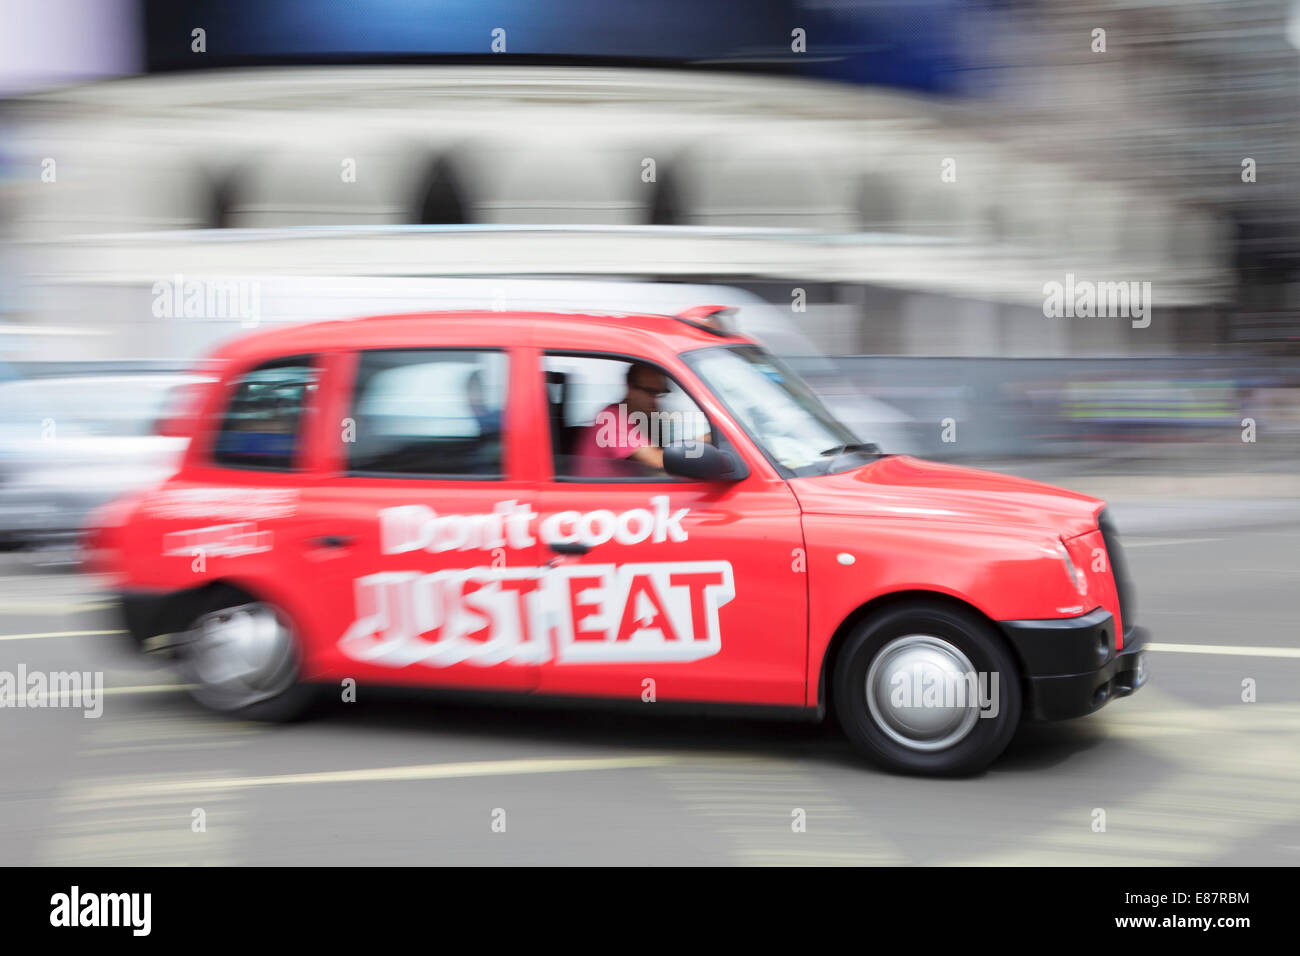 Taxi, motion blur, Piccadilly Circus, London, England, United Kingdom - Stock Image